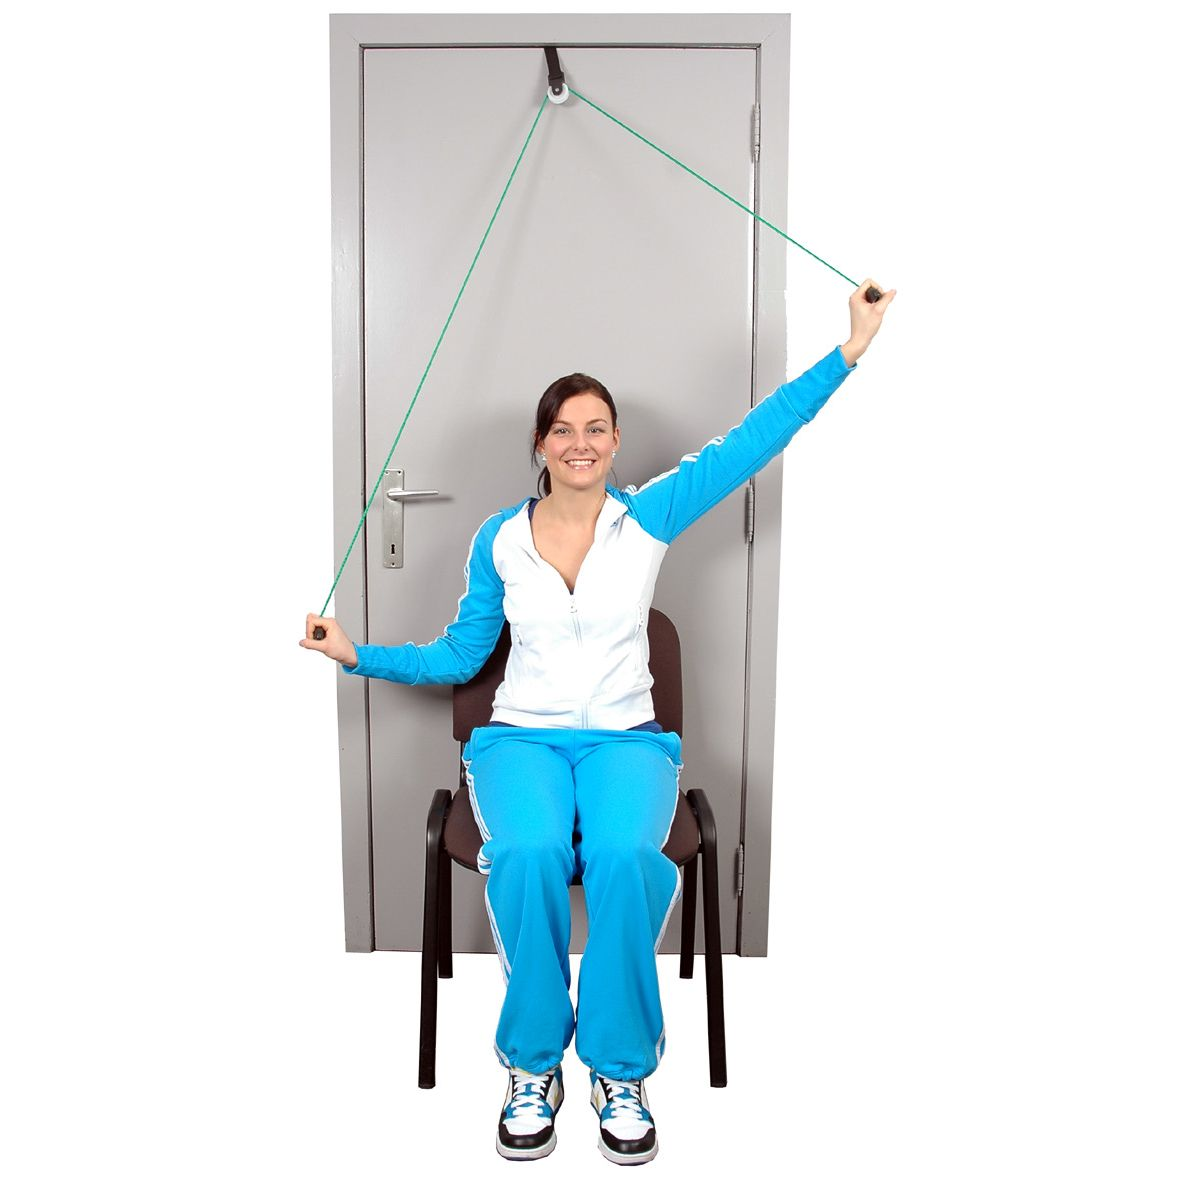 Rehabilitation Exercise MSD MoVeS Shoulder Rope Pulley with Over Door Anchor